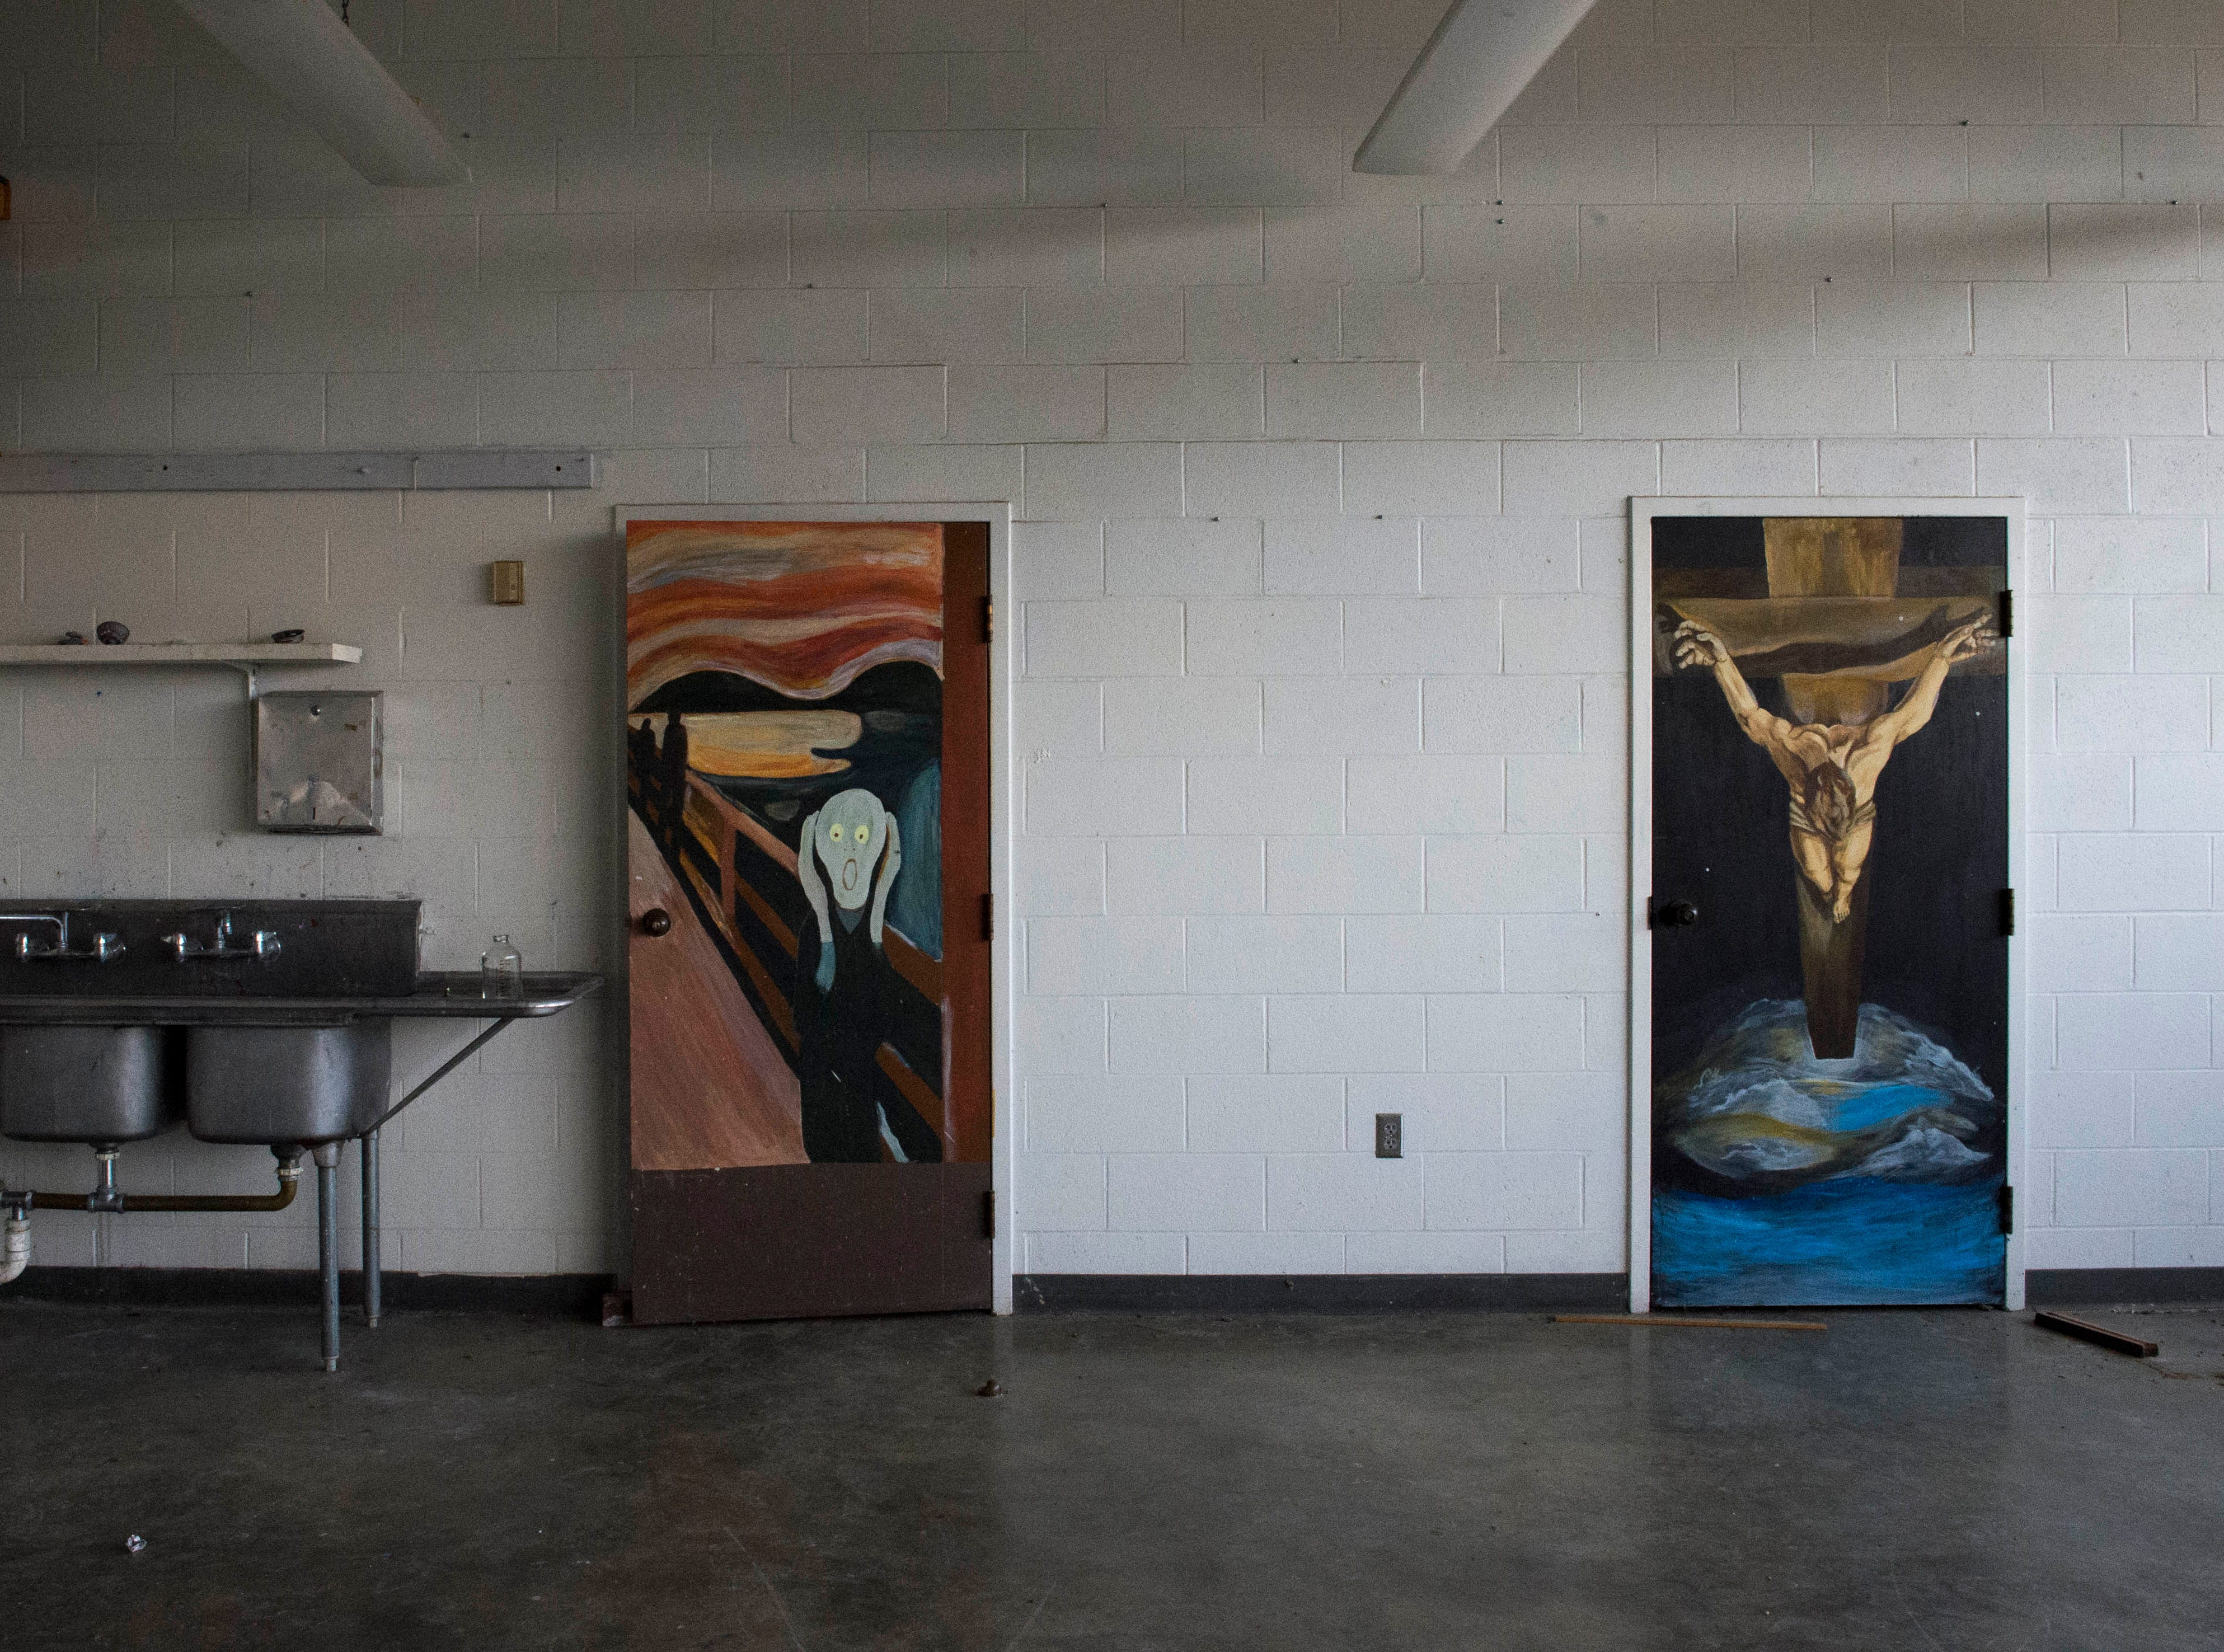 The art room inside New Harmony's empty school building which closed in 2012 due to small enrollment. The Town Council voted 5-0 Tuesday, March 19, 2019 to sell the building to Erik Arneberg for $125,000.